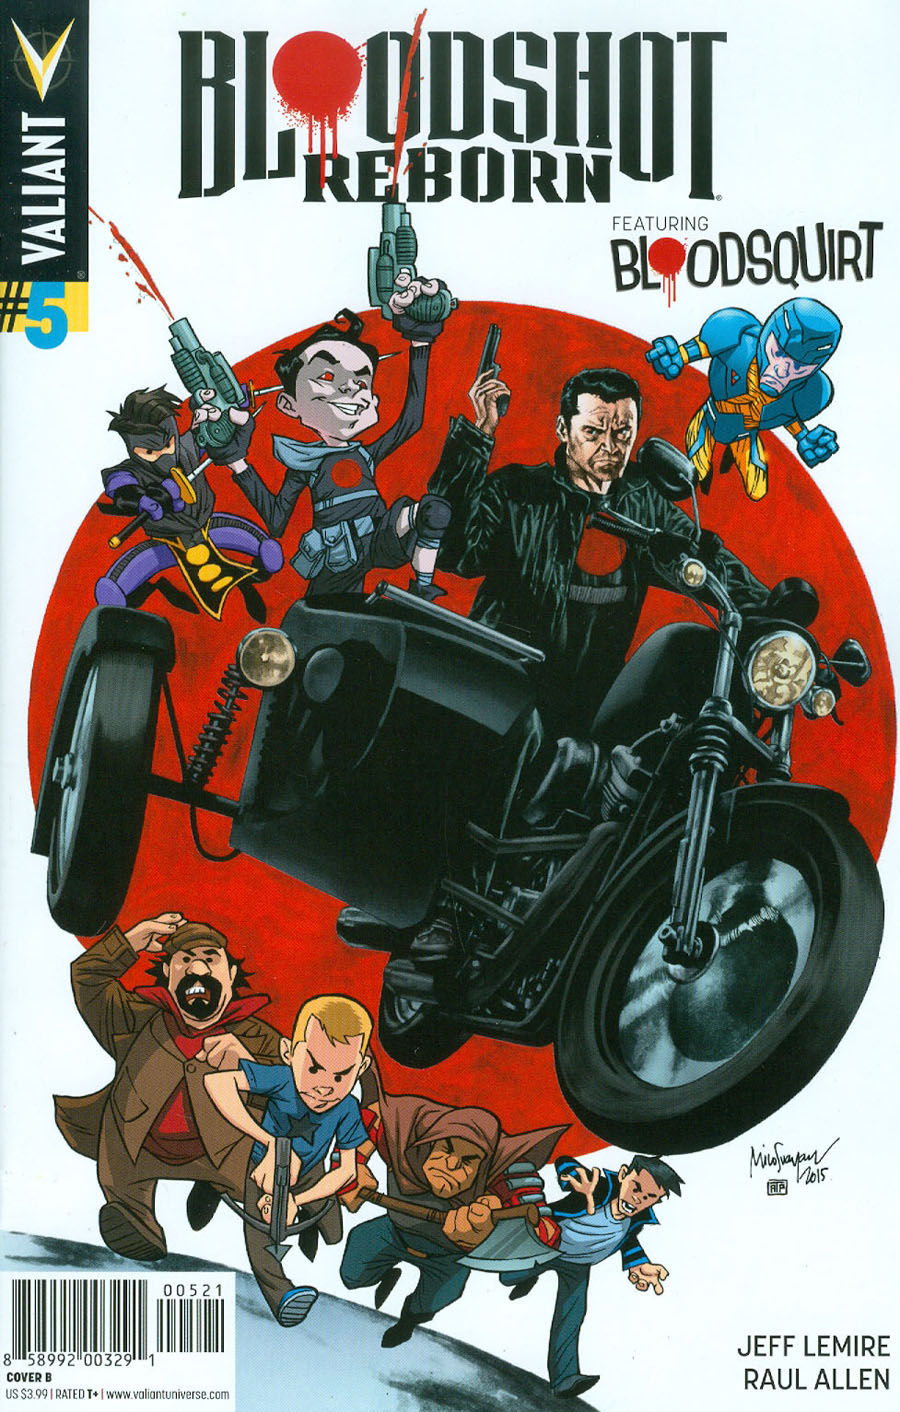 Bloodshot Reborn #5 Cover B Variant Mico Suayan Cover